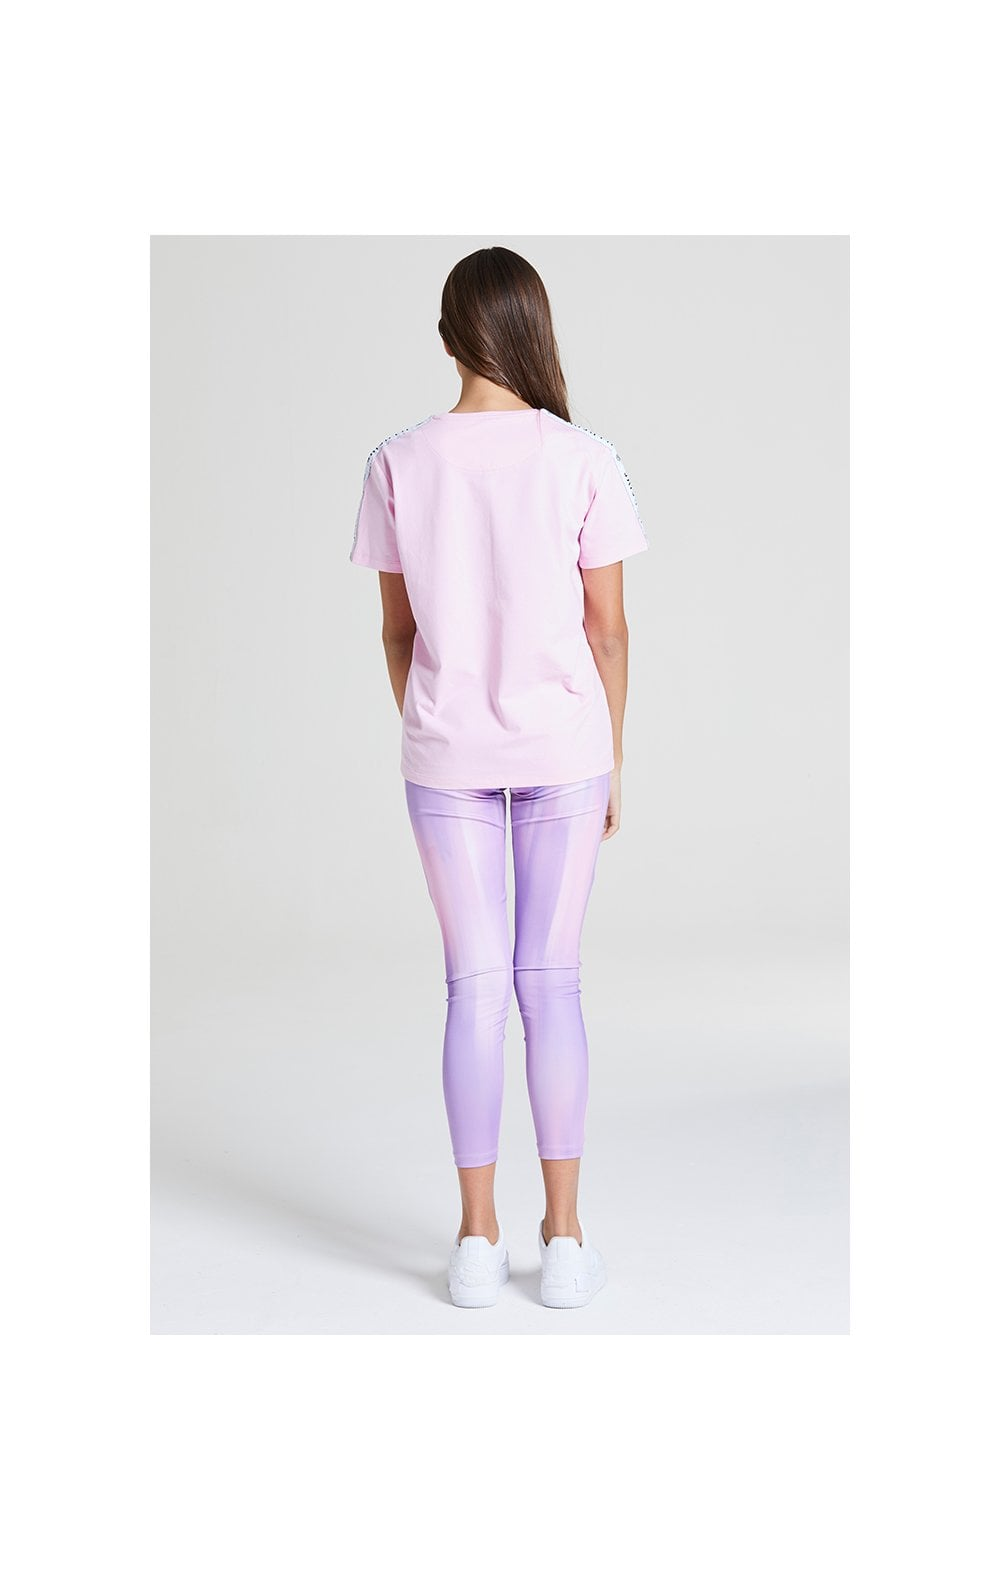 Illusive London BF Fit Taped Tee -  Pink (4)